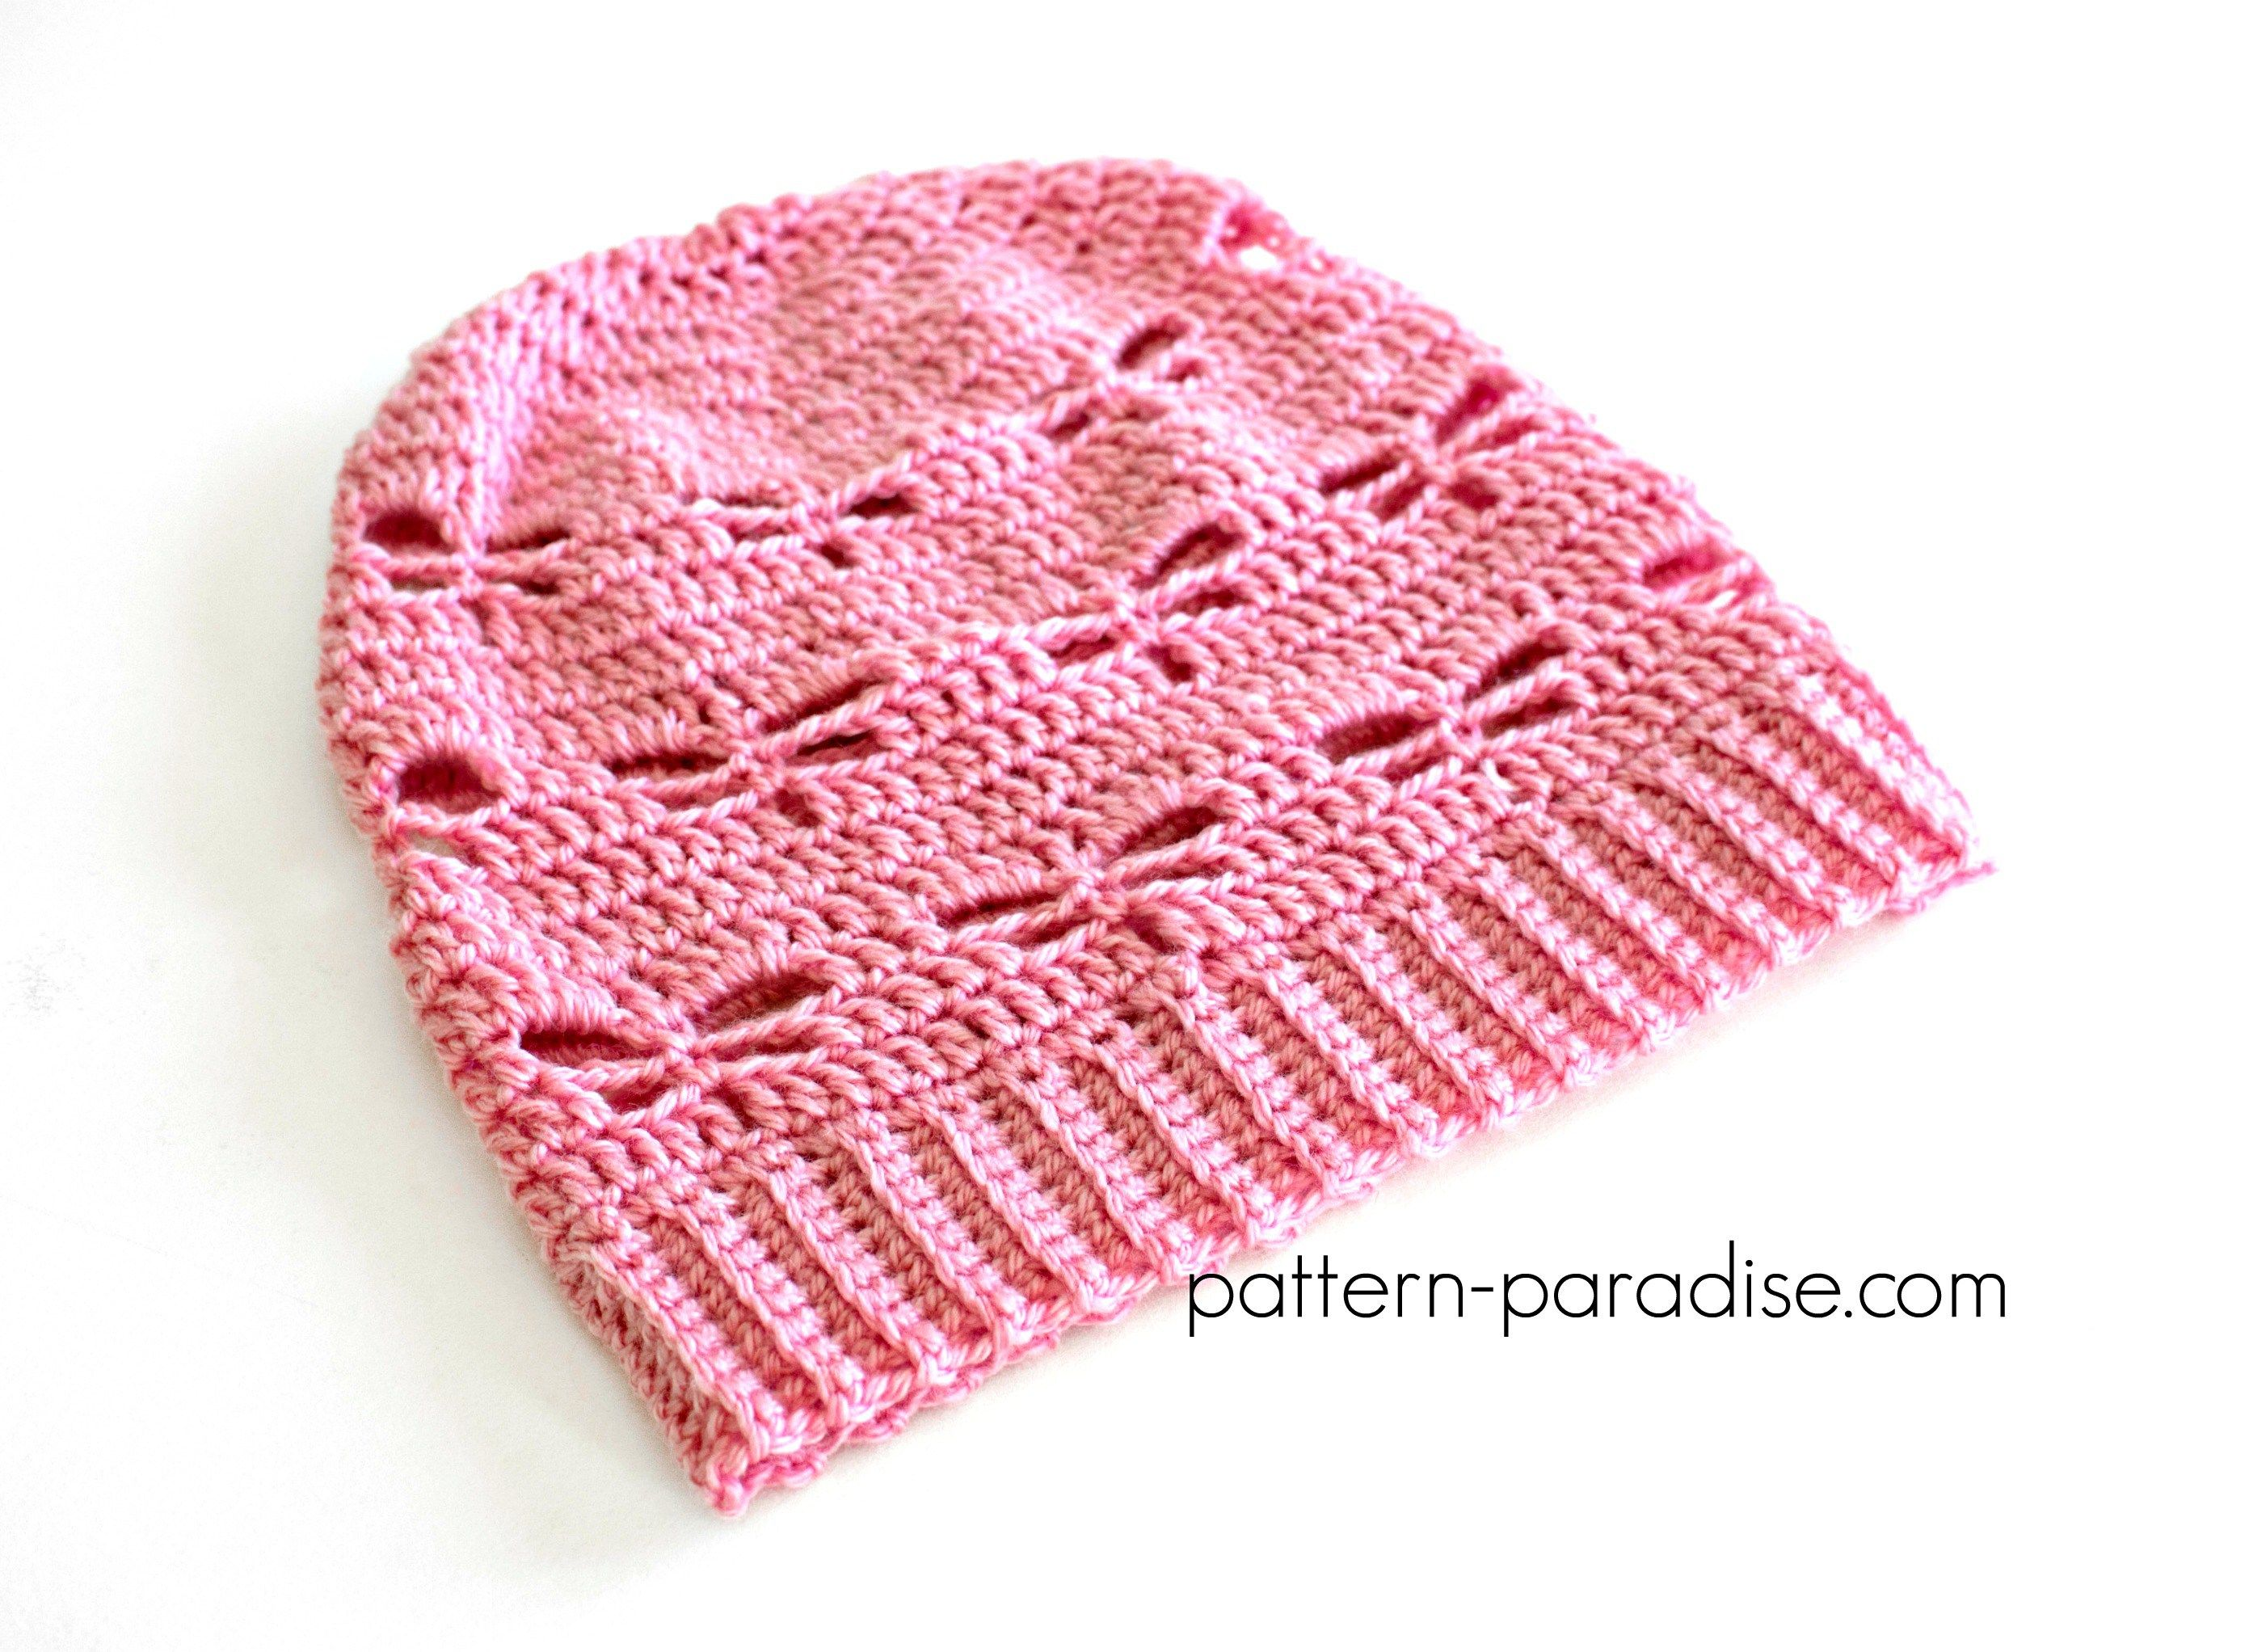 Free crochet pattern for Dragonfly Slouchy hat designed by pattern ...